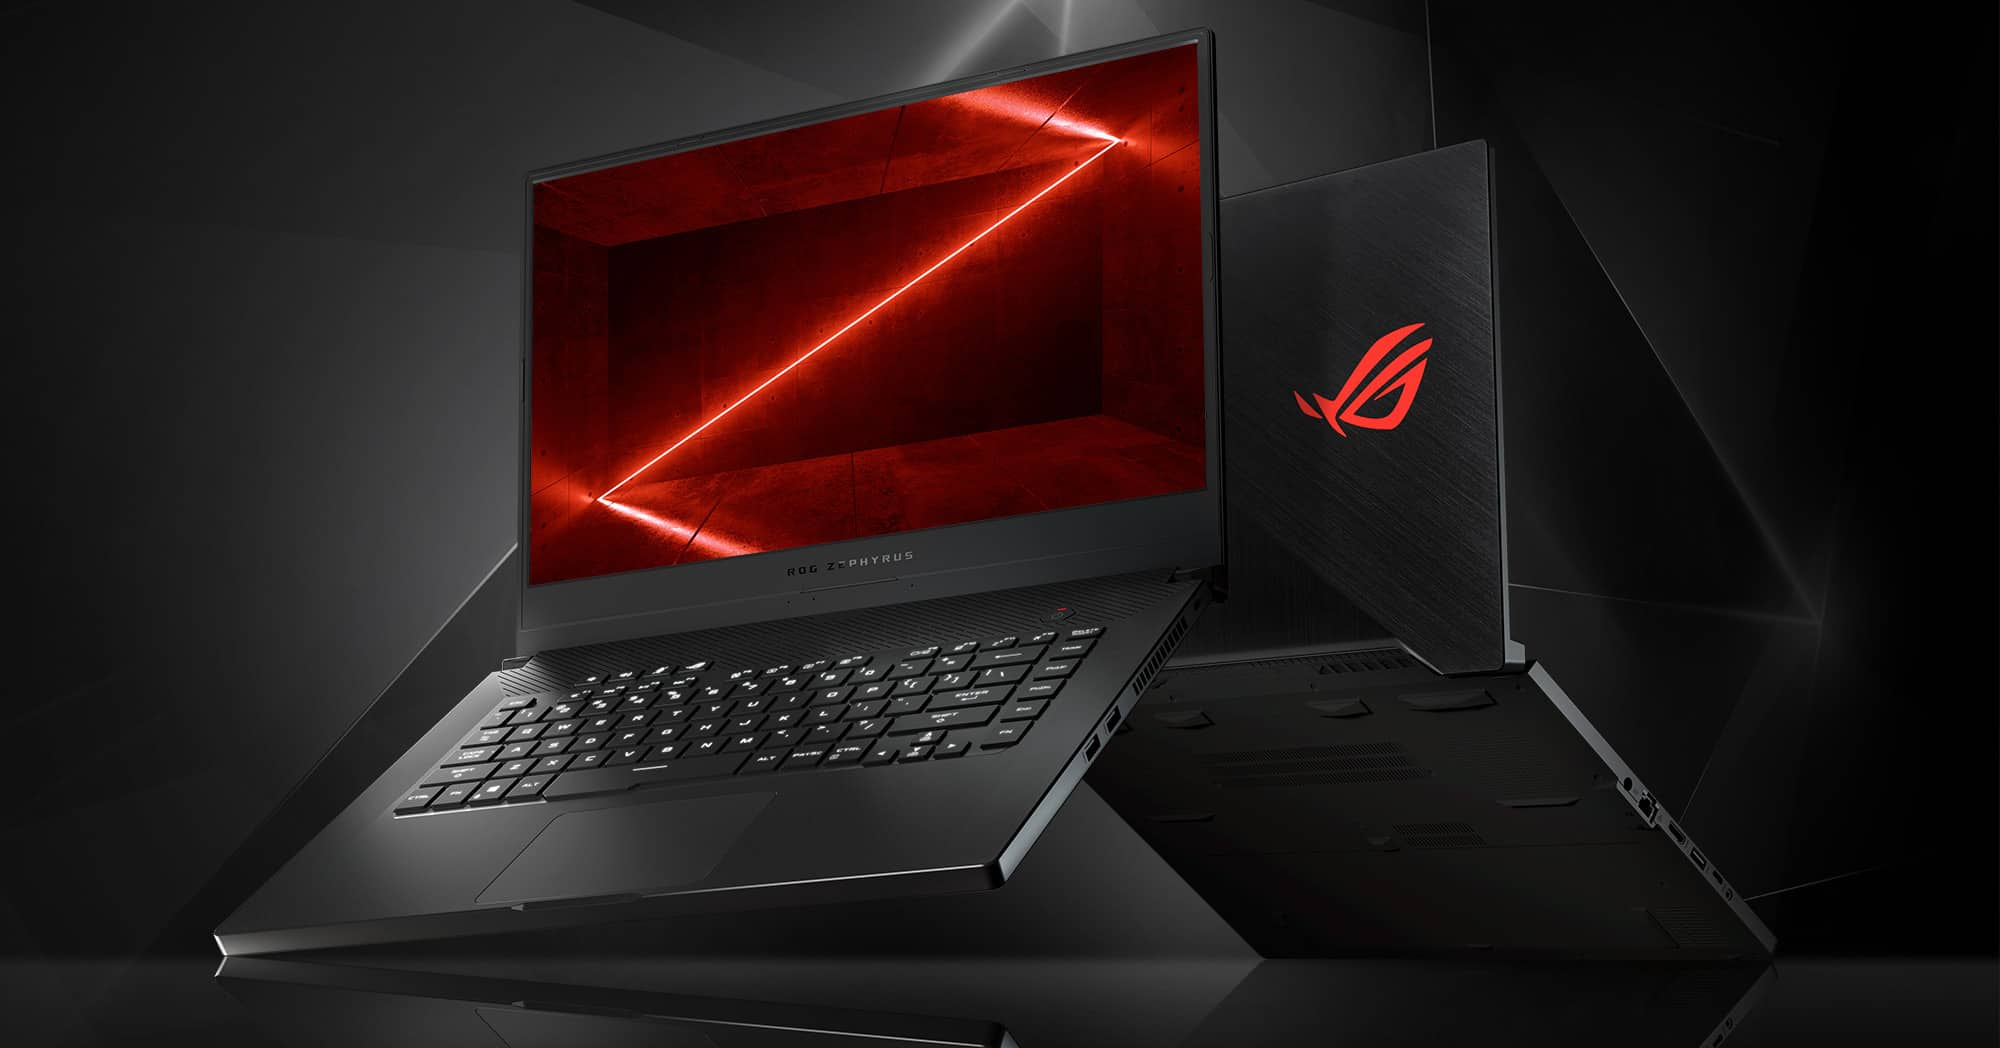 ASUS ROG Zephyrus G gaming laptop launched with GTX 1660Ti & 120Hz display